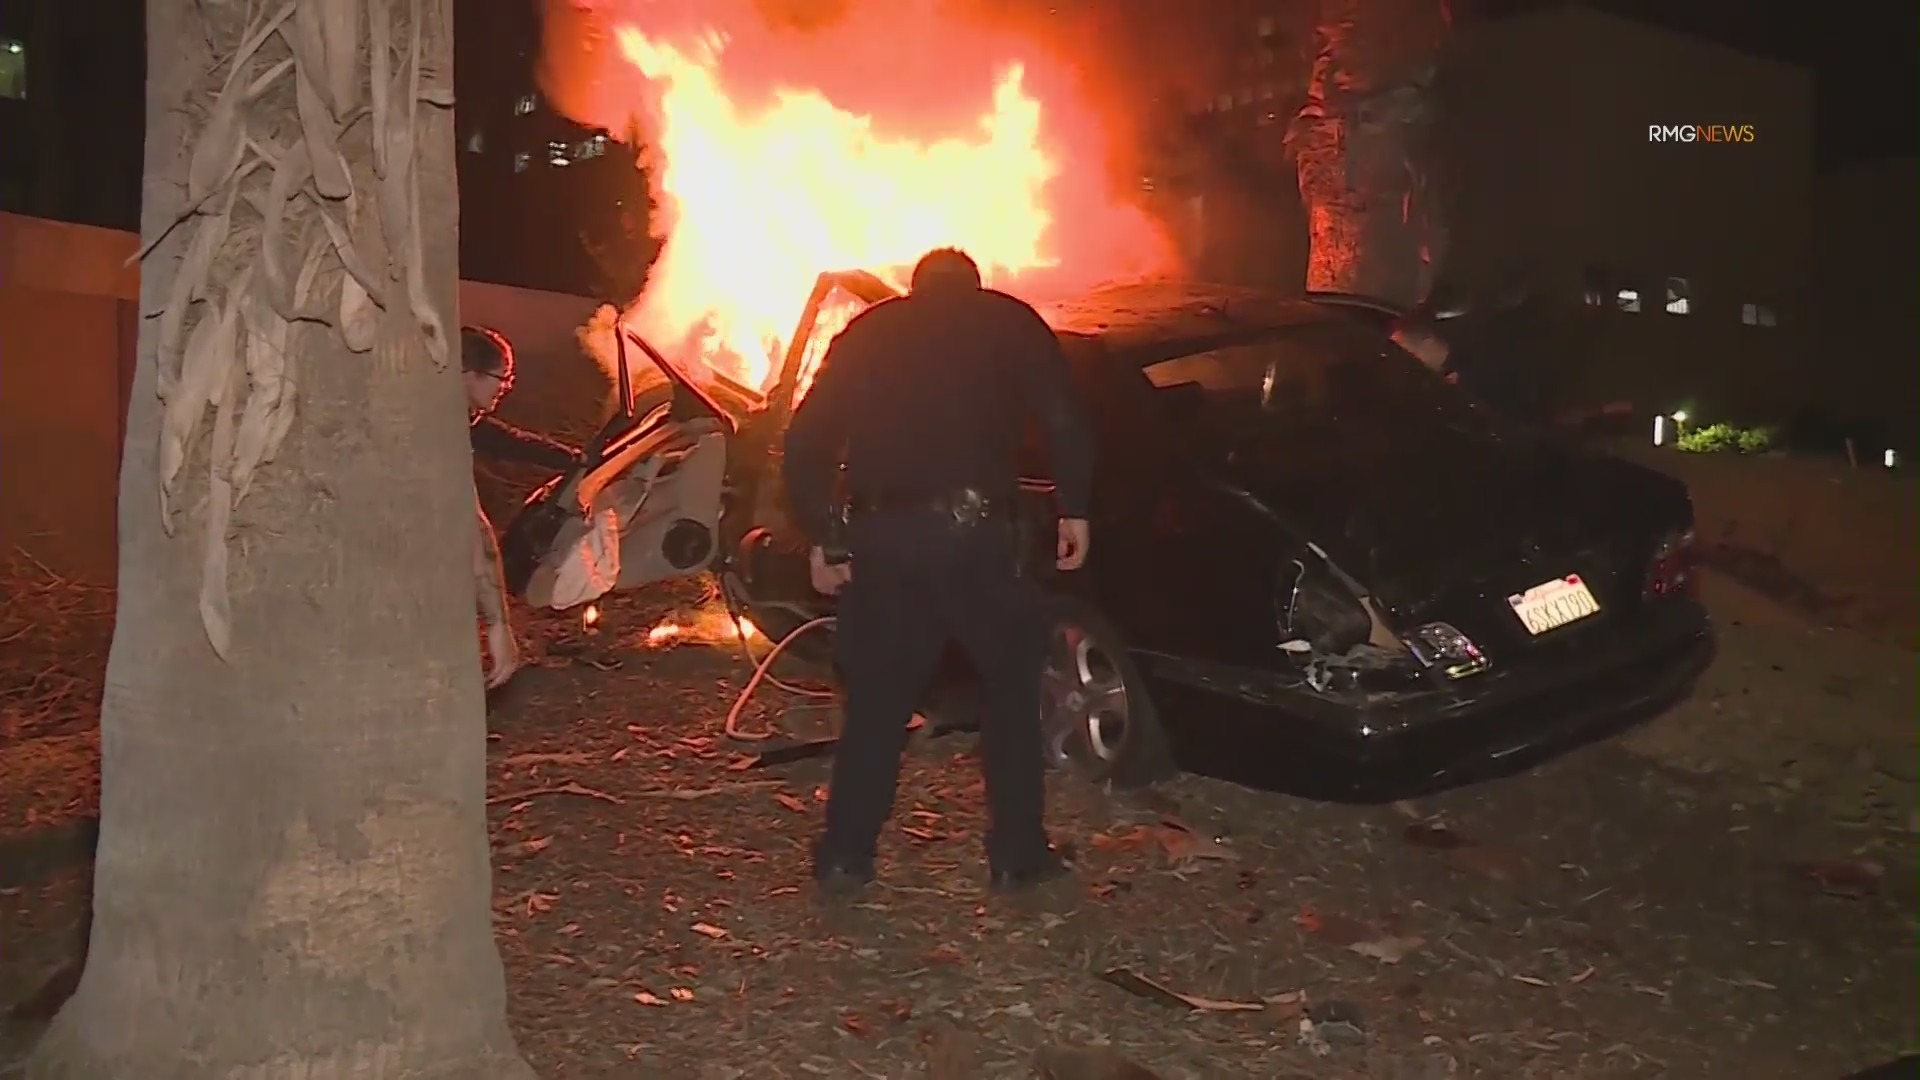 Crews respond to a fiery crash in downtown Los Angeles on Jan. 21, 2021. (RMG News)